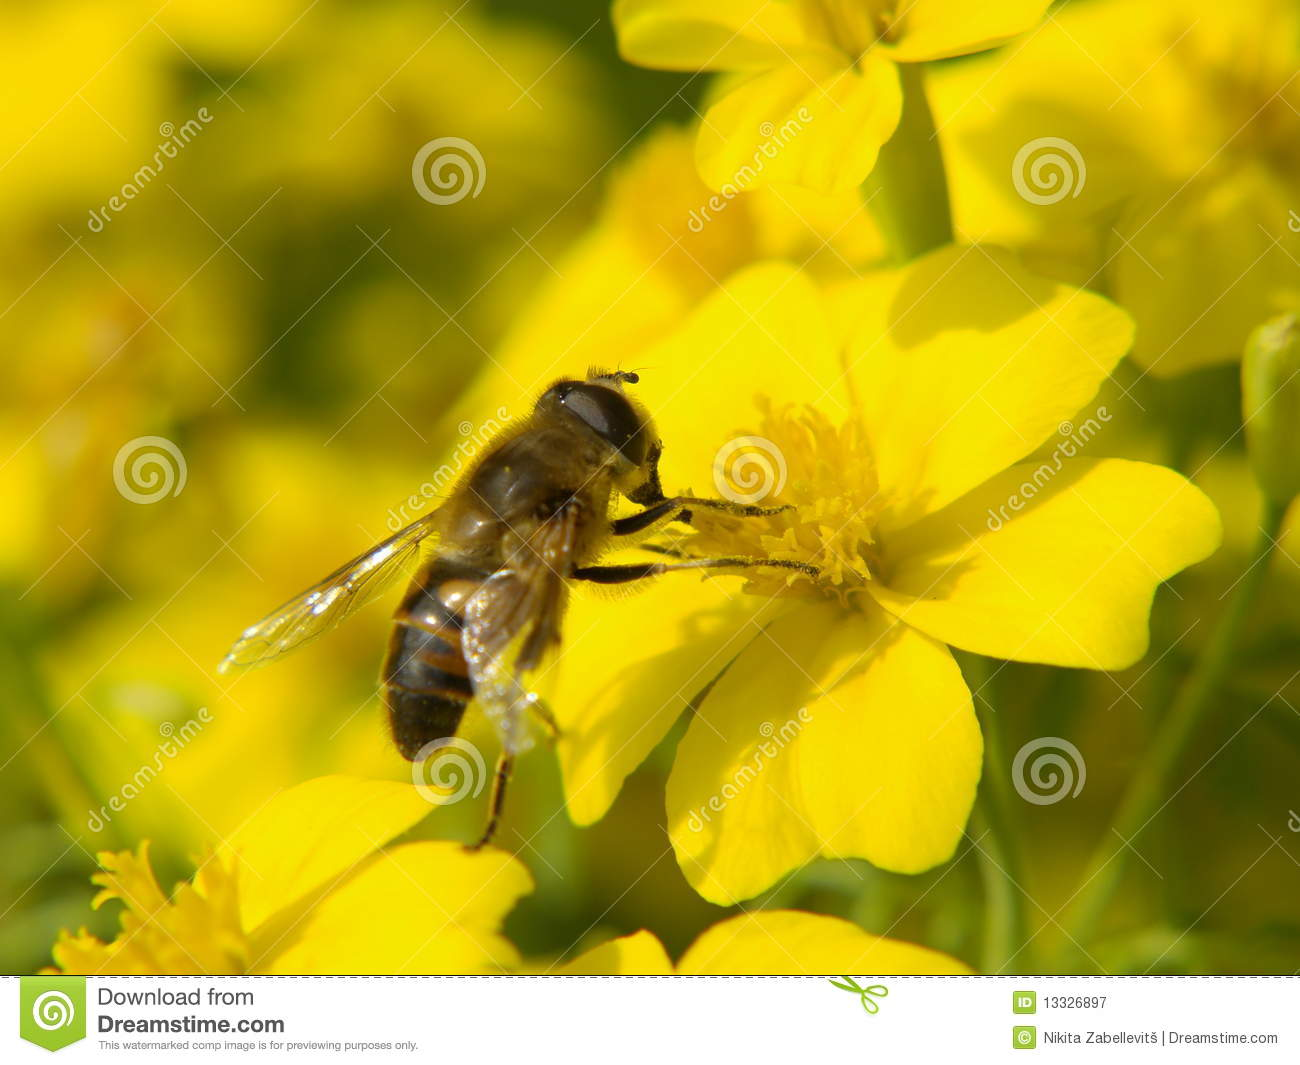 the issues of pollination by the honeybees in the united states And the internalization of reciprocal benefits those for honey bees in the united states and the policy issues surrounding pollination agriculture have.